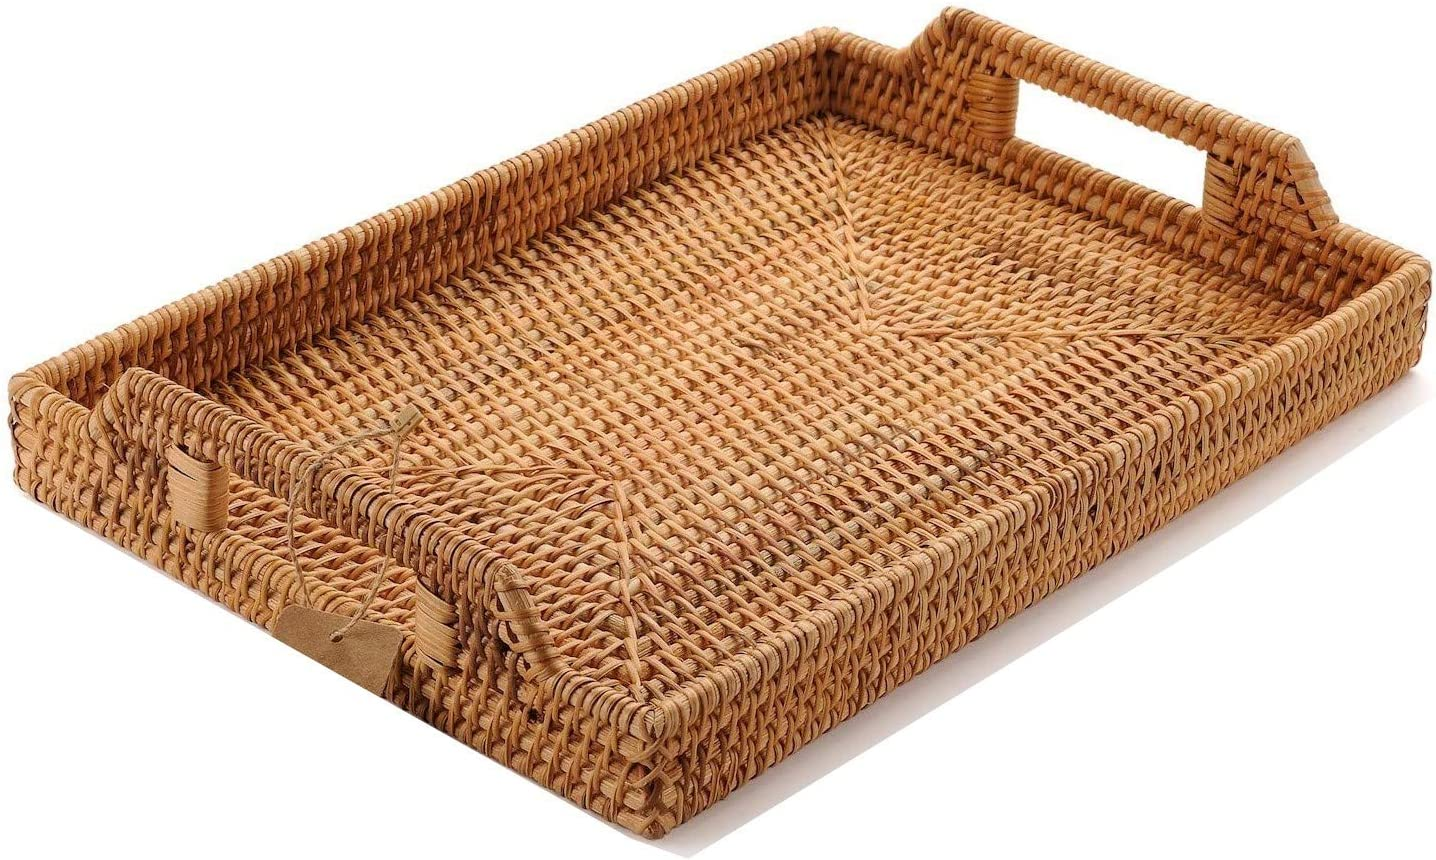 Amazon Com Yangqihome Hand Woven Rattan Serving Tray With Handles For Breakfast Drinks Snack For Dining Coffee Table 14 5 Inch 37 Cm Rectangular Kitchen Dining